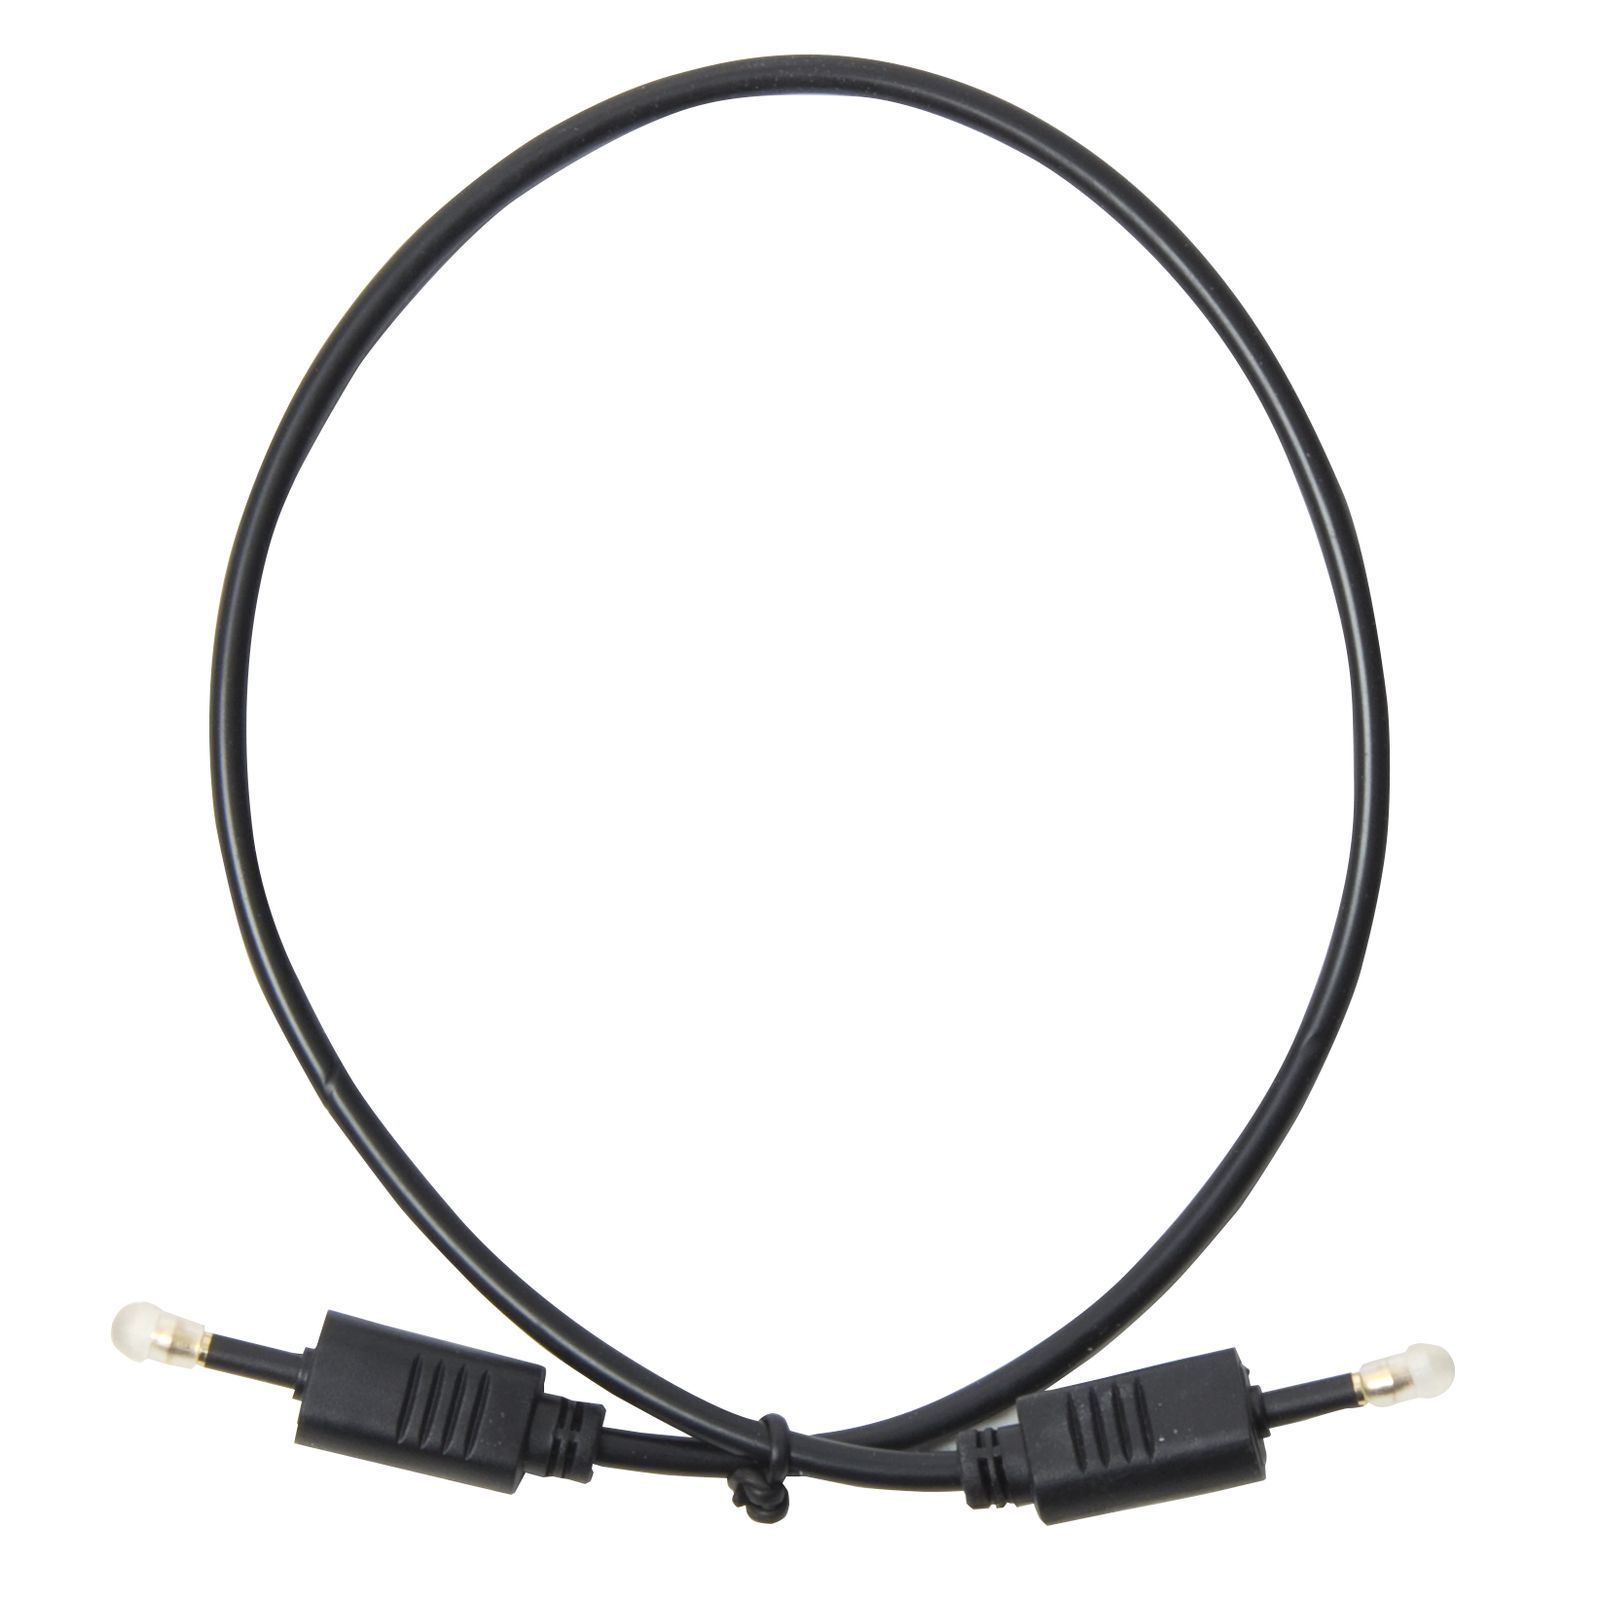 MUSIC STORE Optical Cable 0,5m 3,5mm => 3,5mm opt. Klinke Produktbild